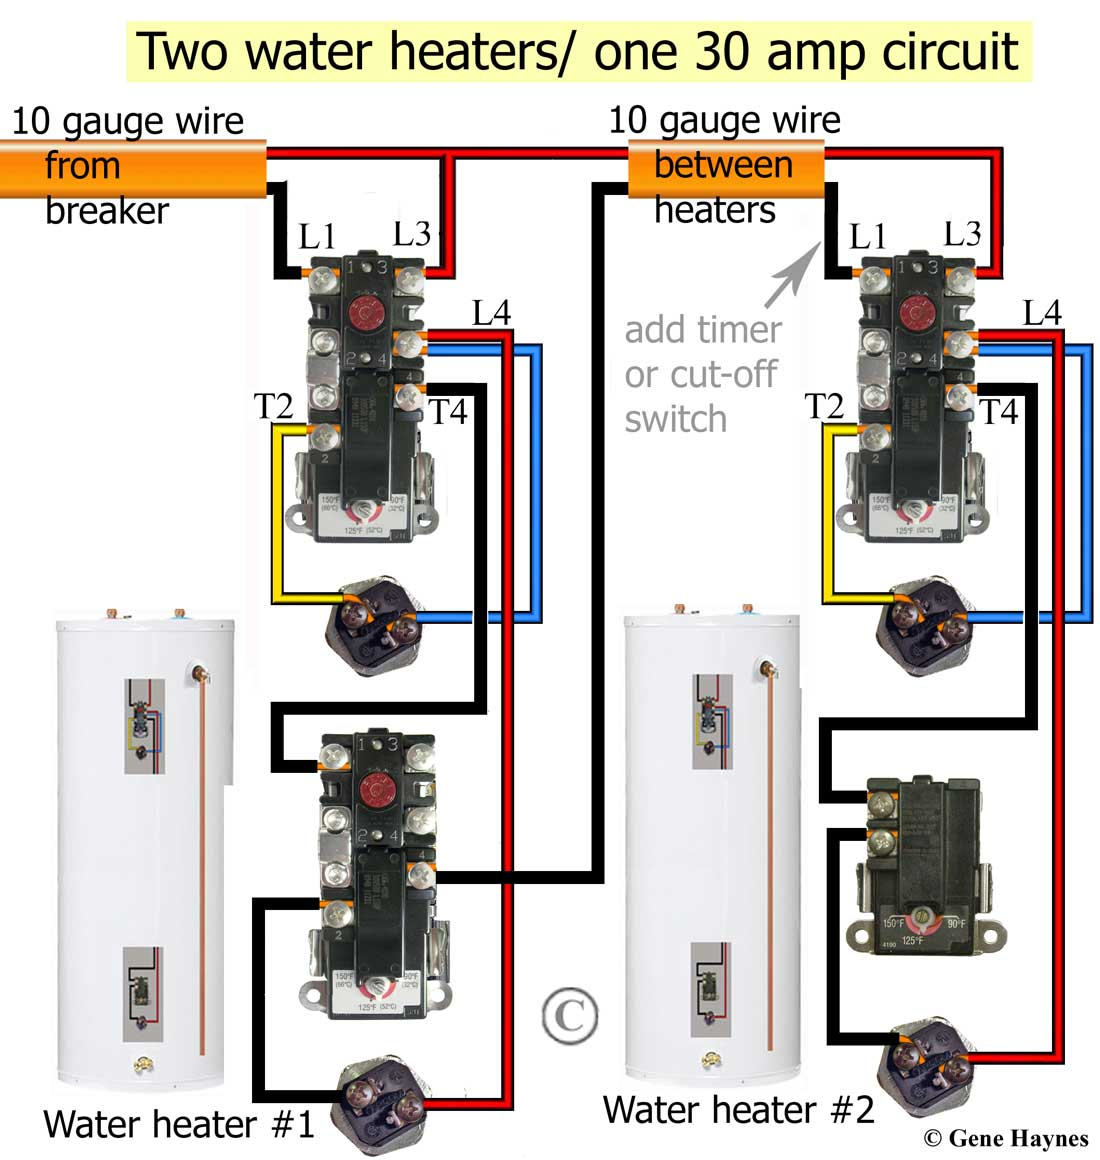 110 water heater thermostat wiring diagram wiring librarysimultaneous wiring will heat top of tank first redundant will turn on as soon as